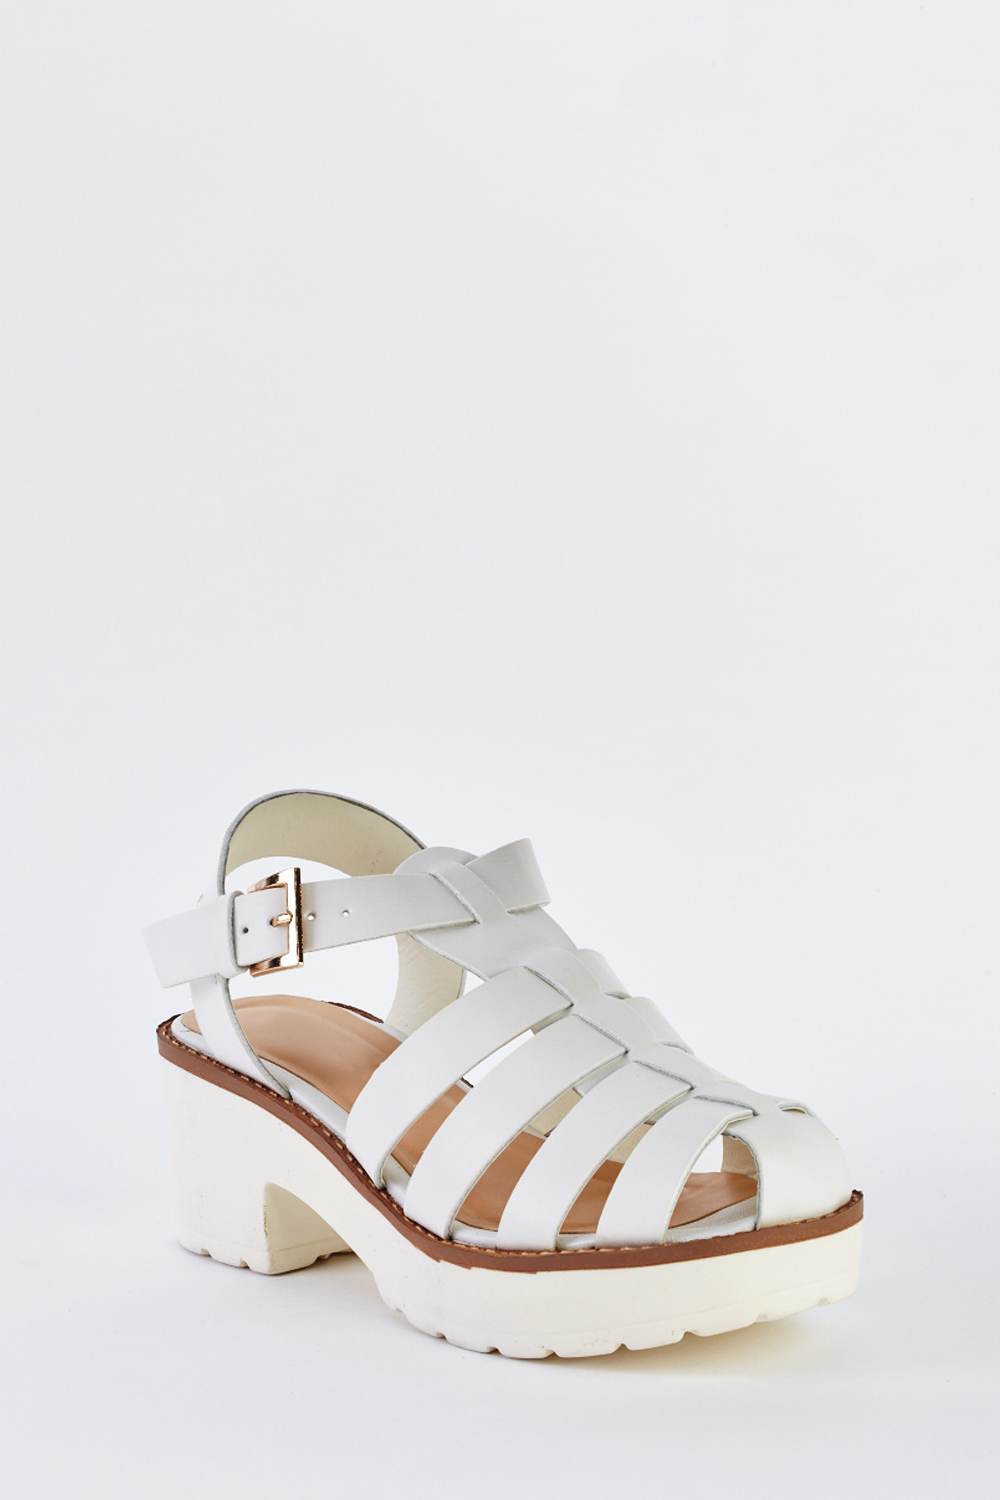 3a3afec36a11 Chunky Heel Gladiator Sandals - Just £5